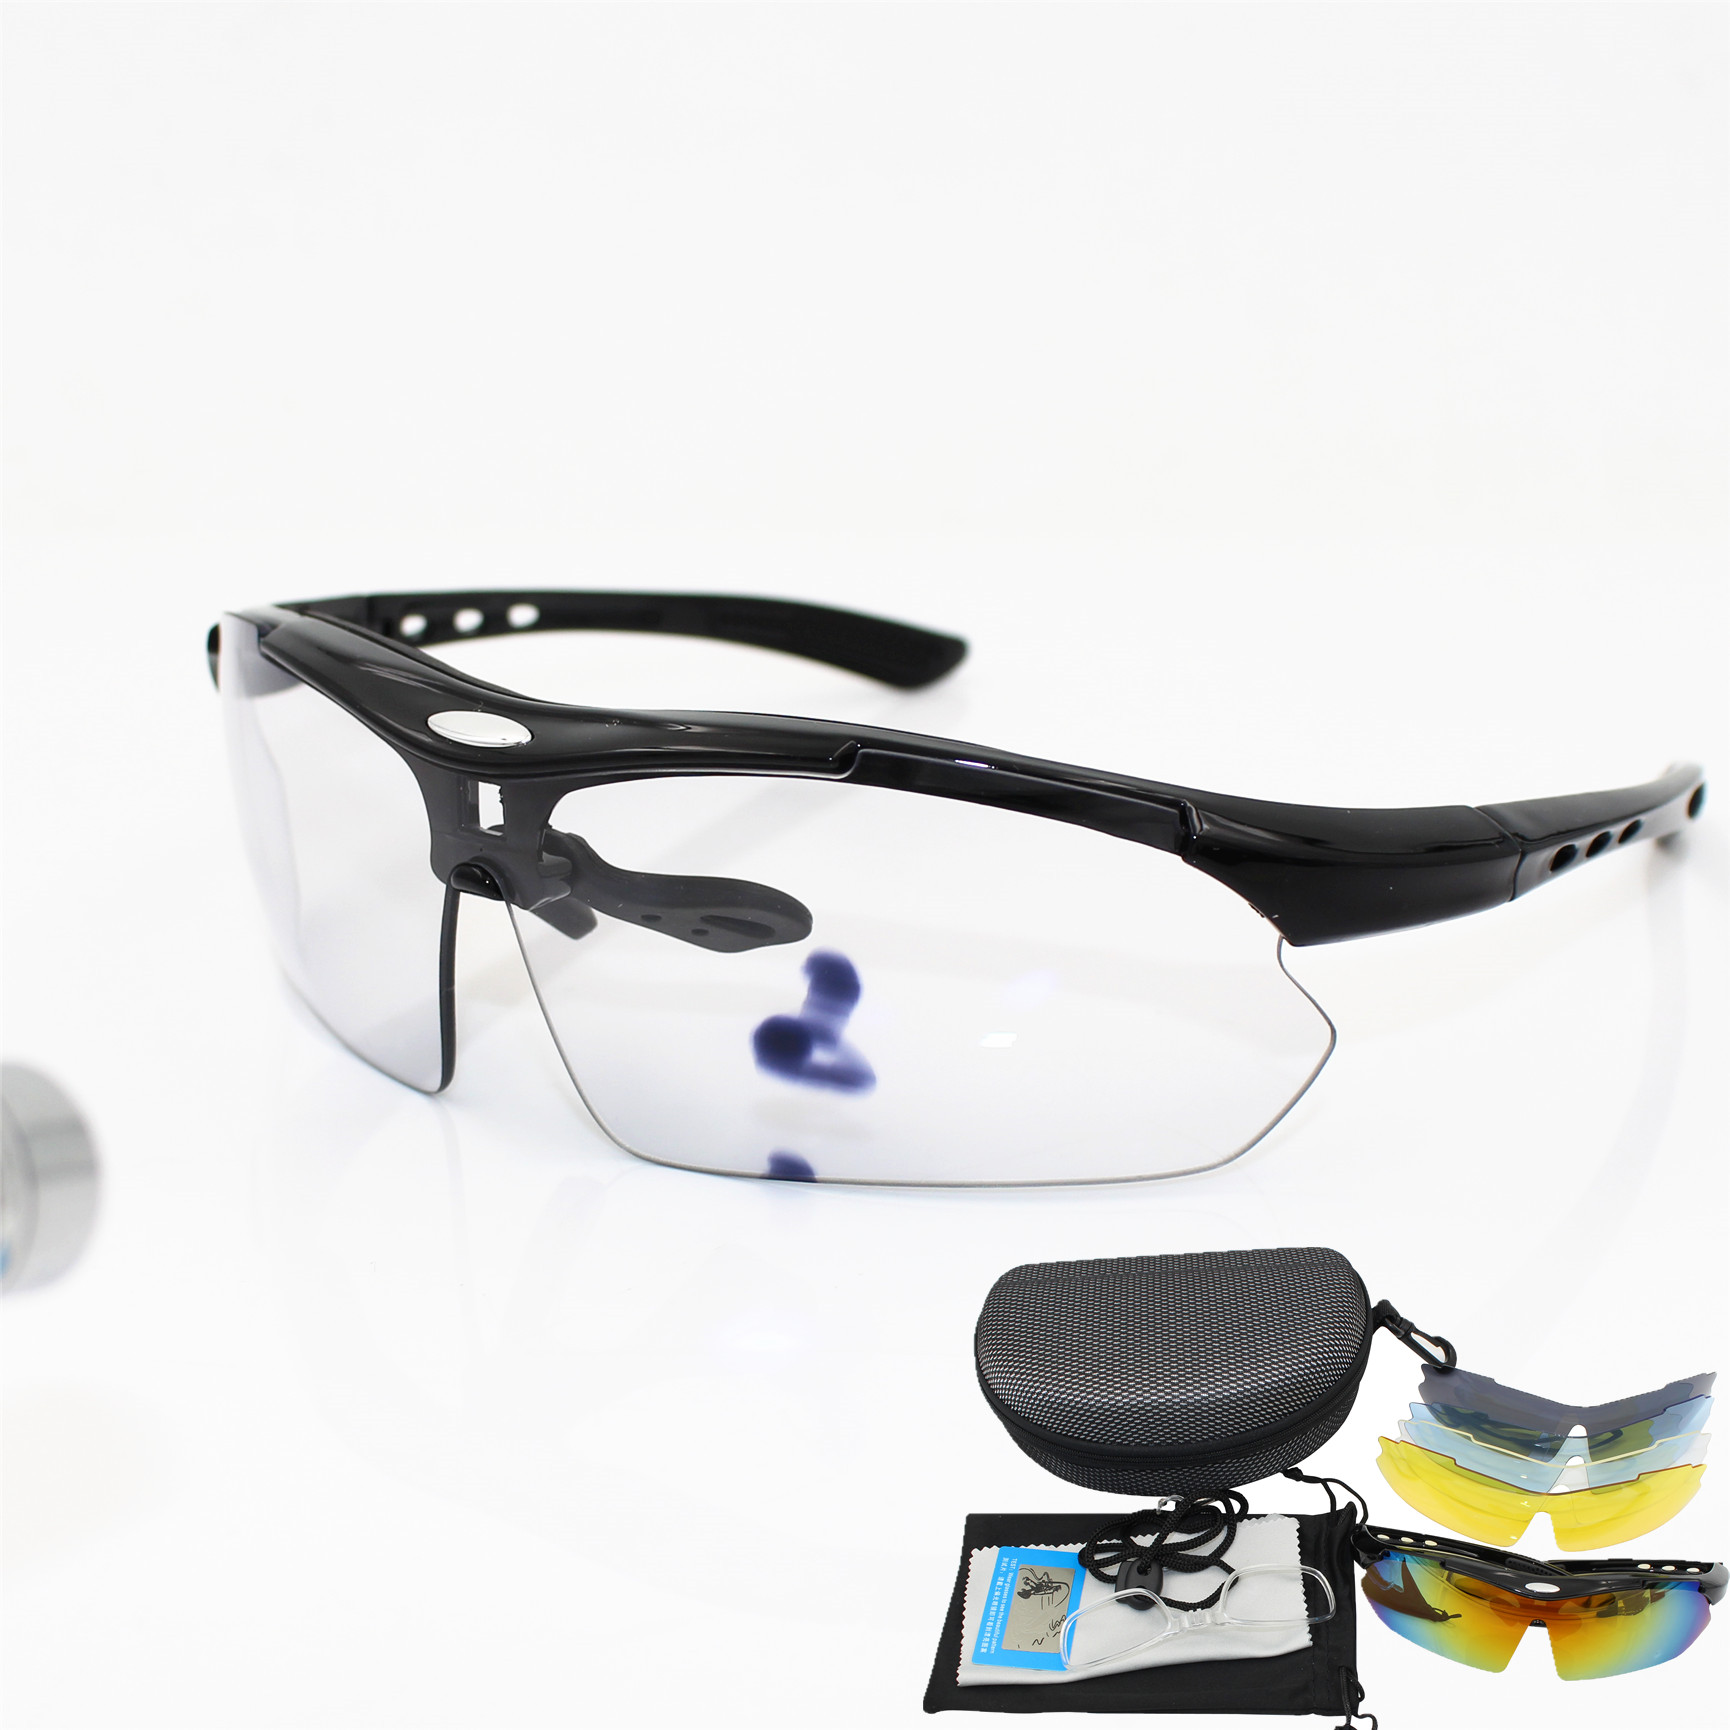 Photochromic Cycling <font><b>Glasses</b></font> Polarized sunglasses <font><b>Bike</b></font> Goggles Outdoor Sports Bicycle <font><b>Glasses</b></font> UV400 With <font><b>5</b></font> <font><b>Lens</b></font> Running <font><b>glasses</b></font> image